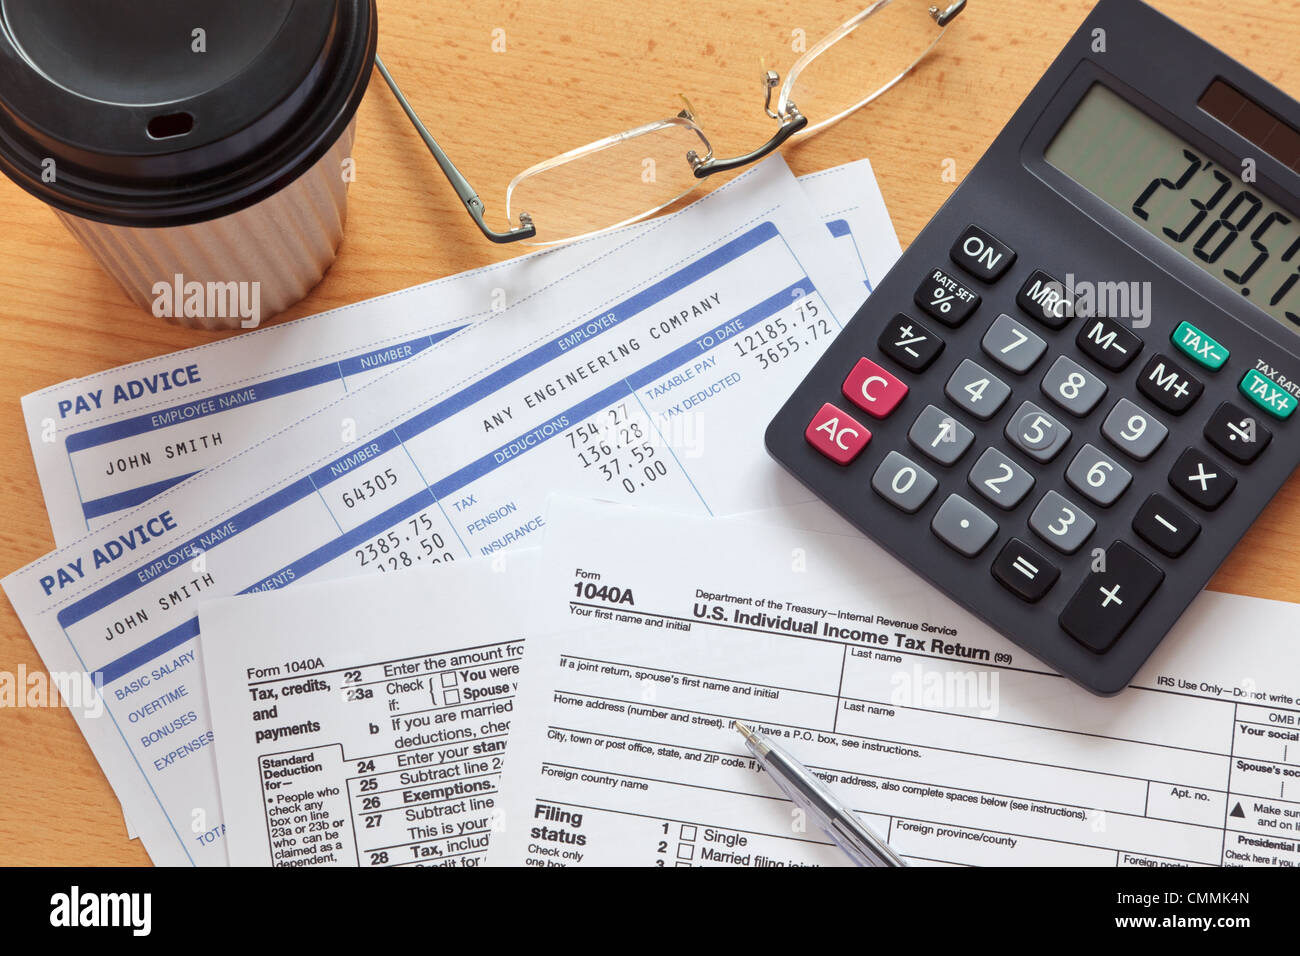 Photo of a 1040A tax form with payslips and a calculator. - Stock Image